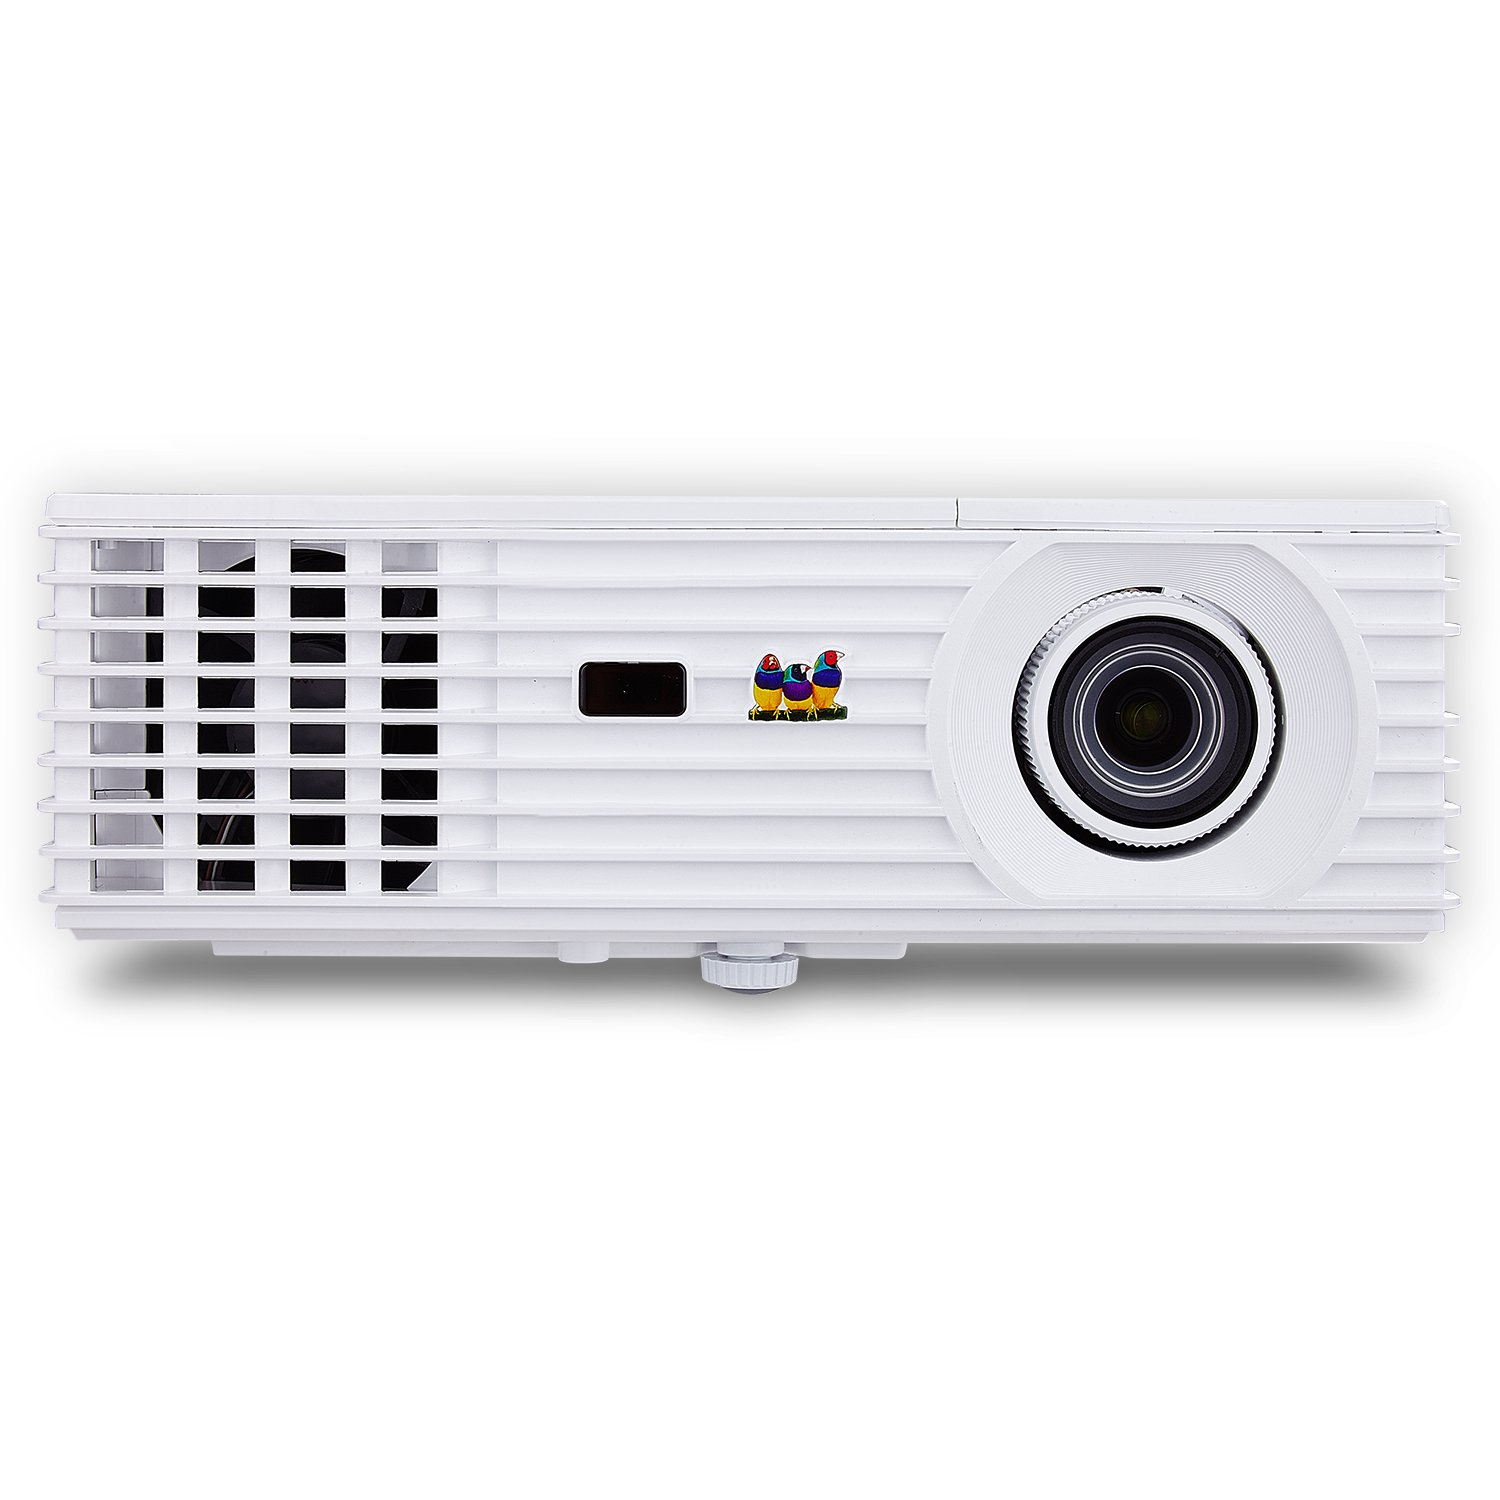 ViewSonic PJD7822HDL DLP 3200 Lumens, 2x HDMI, Powered USB, 3D Blu-Ray Ready 1080p Home Entertainment Projector